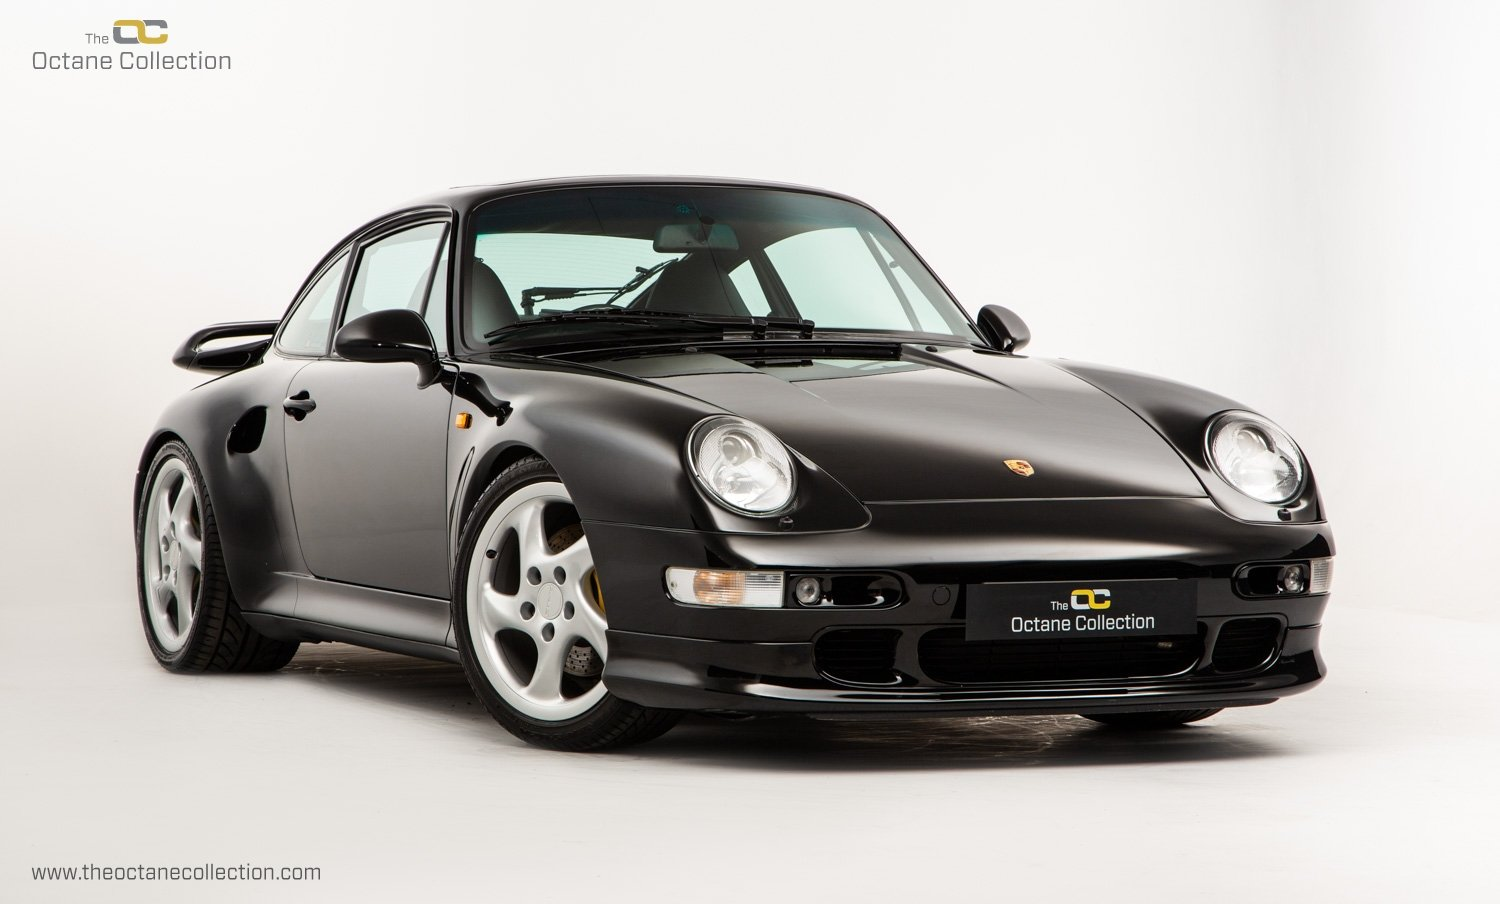 1998 PORSCHE 993 TURBO S // 1 OF 23 RHD CARS // UK C16 // FPSH For Sale (picture 1 of 24)